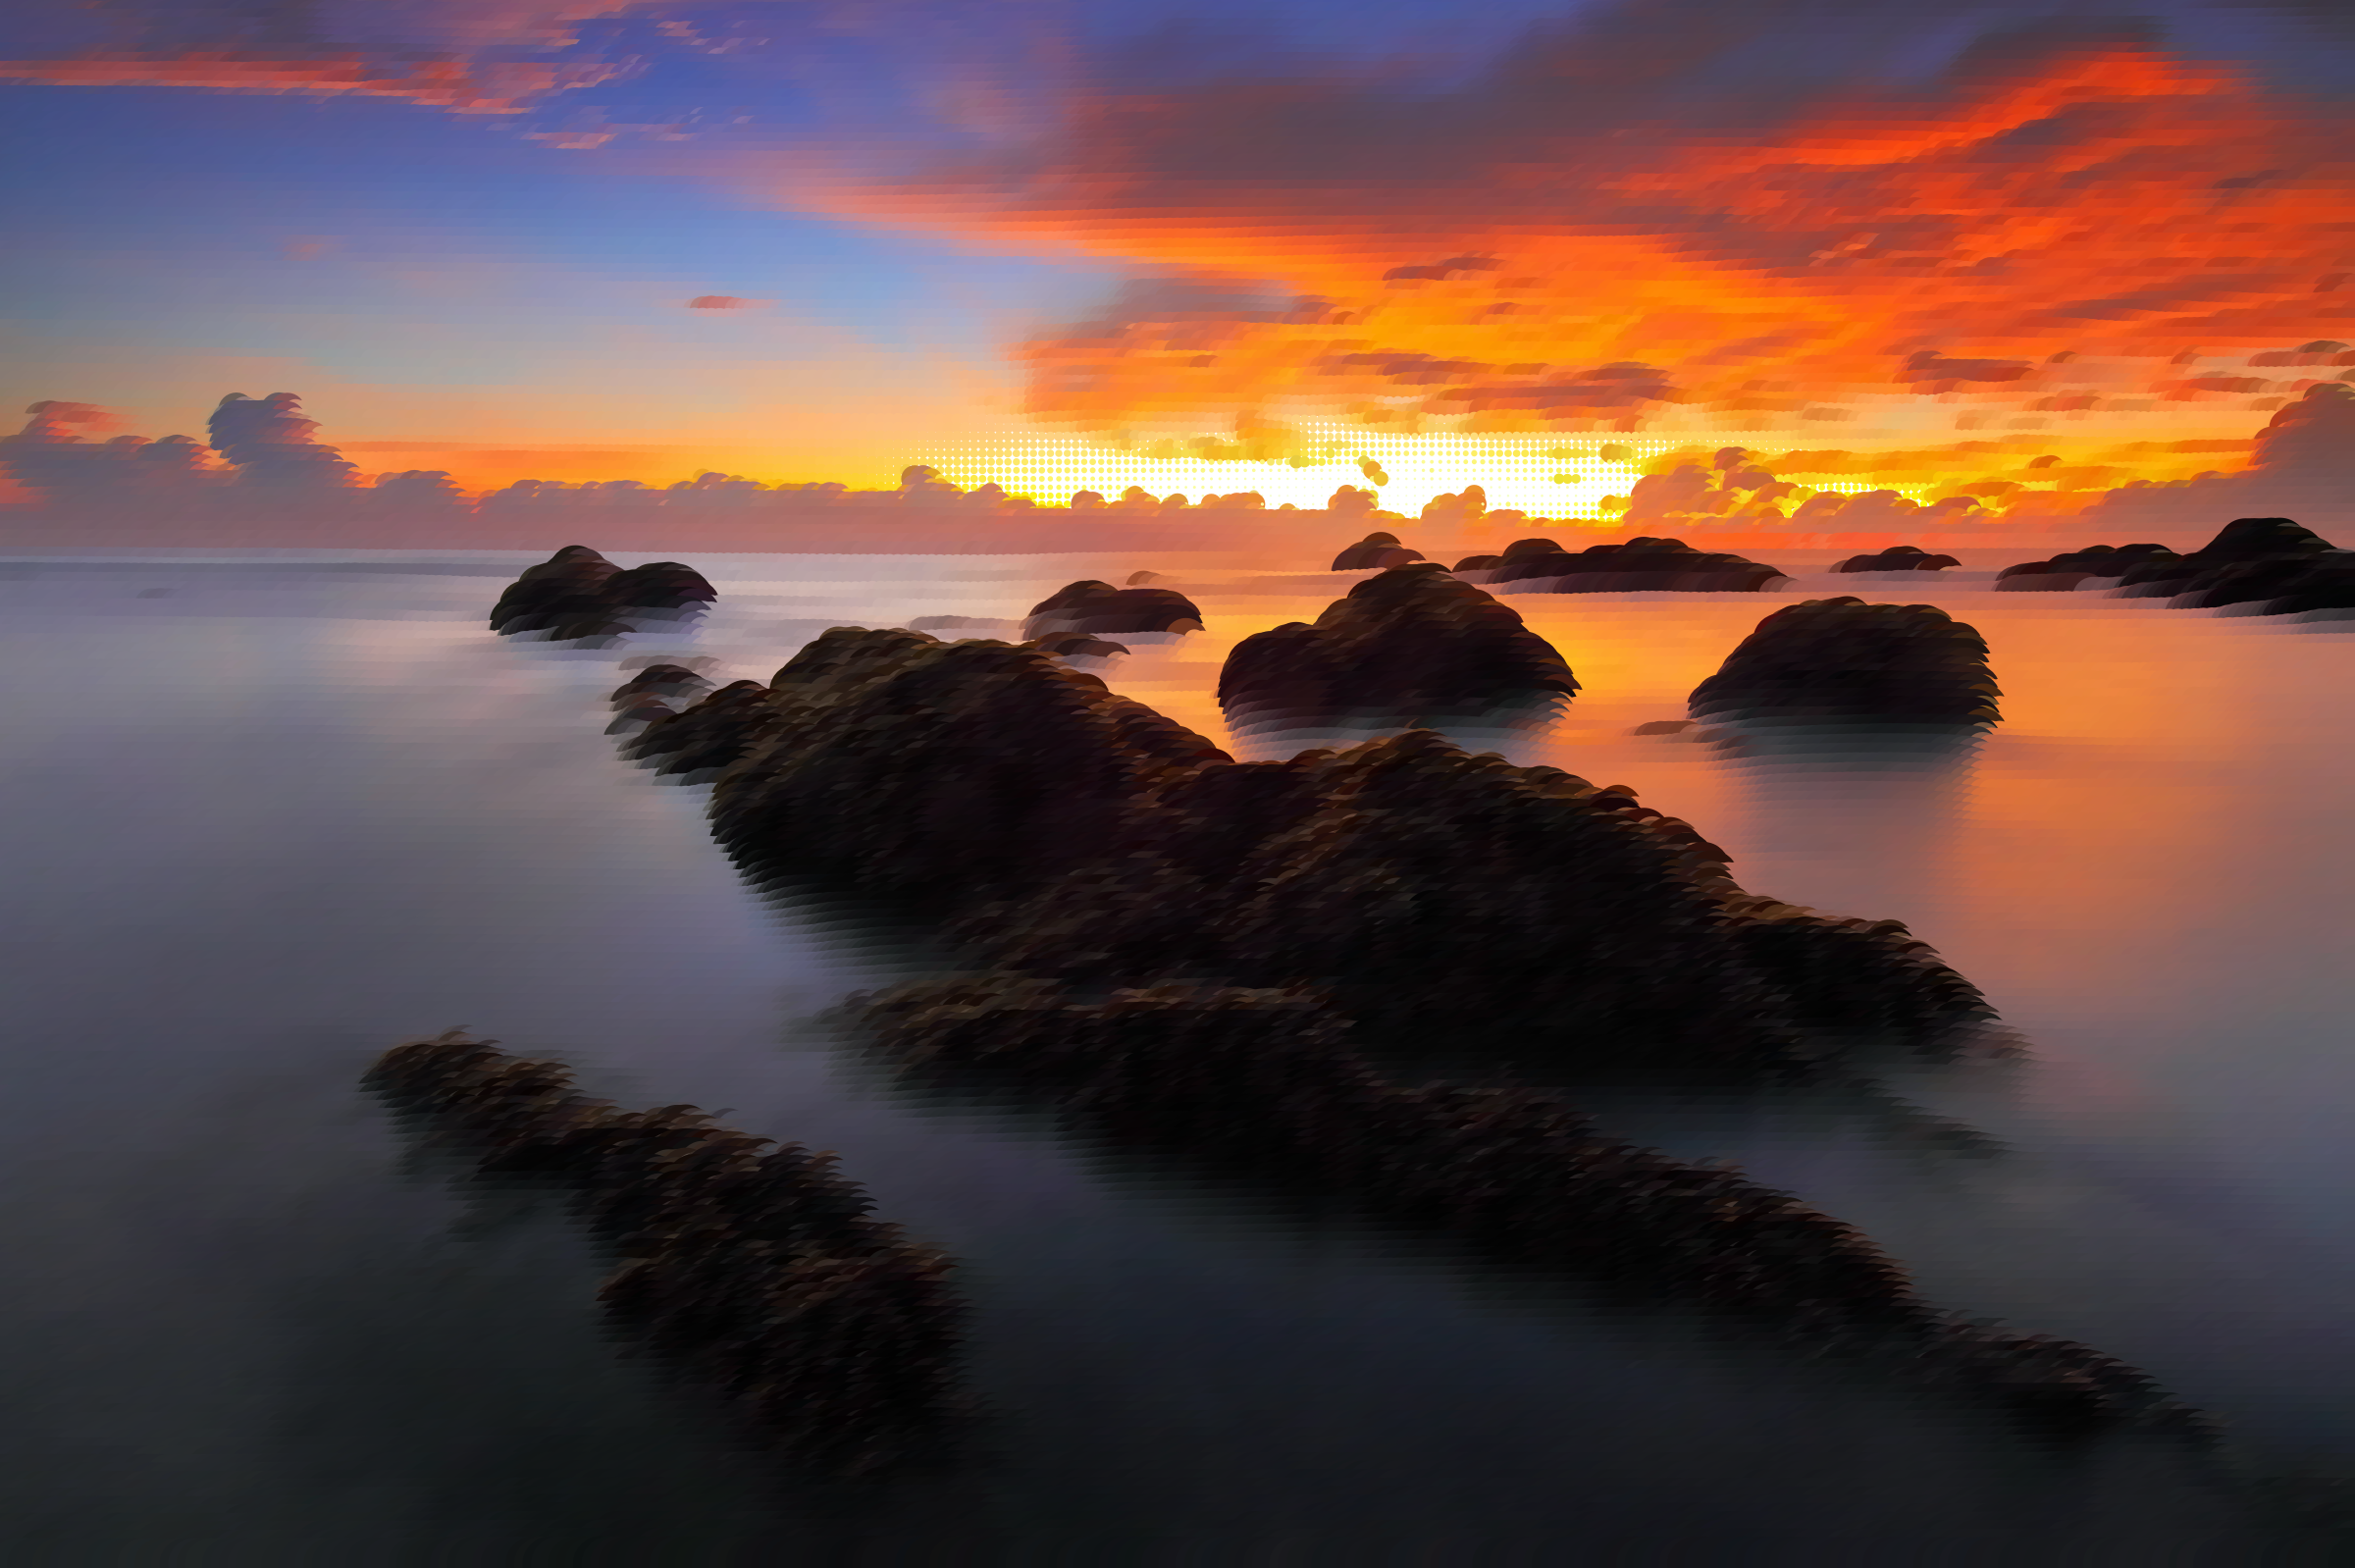 Surreal Seascape Sunset by GDJ